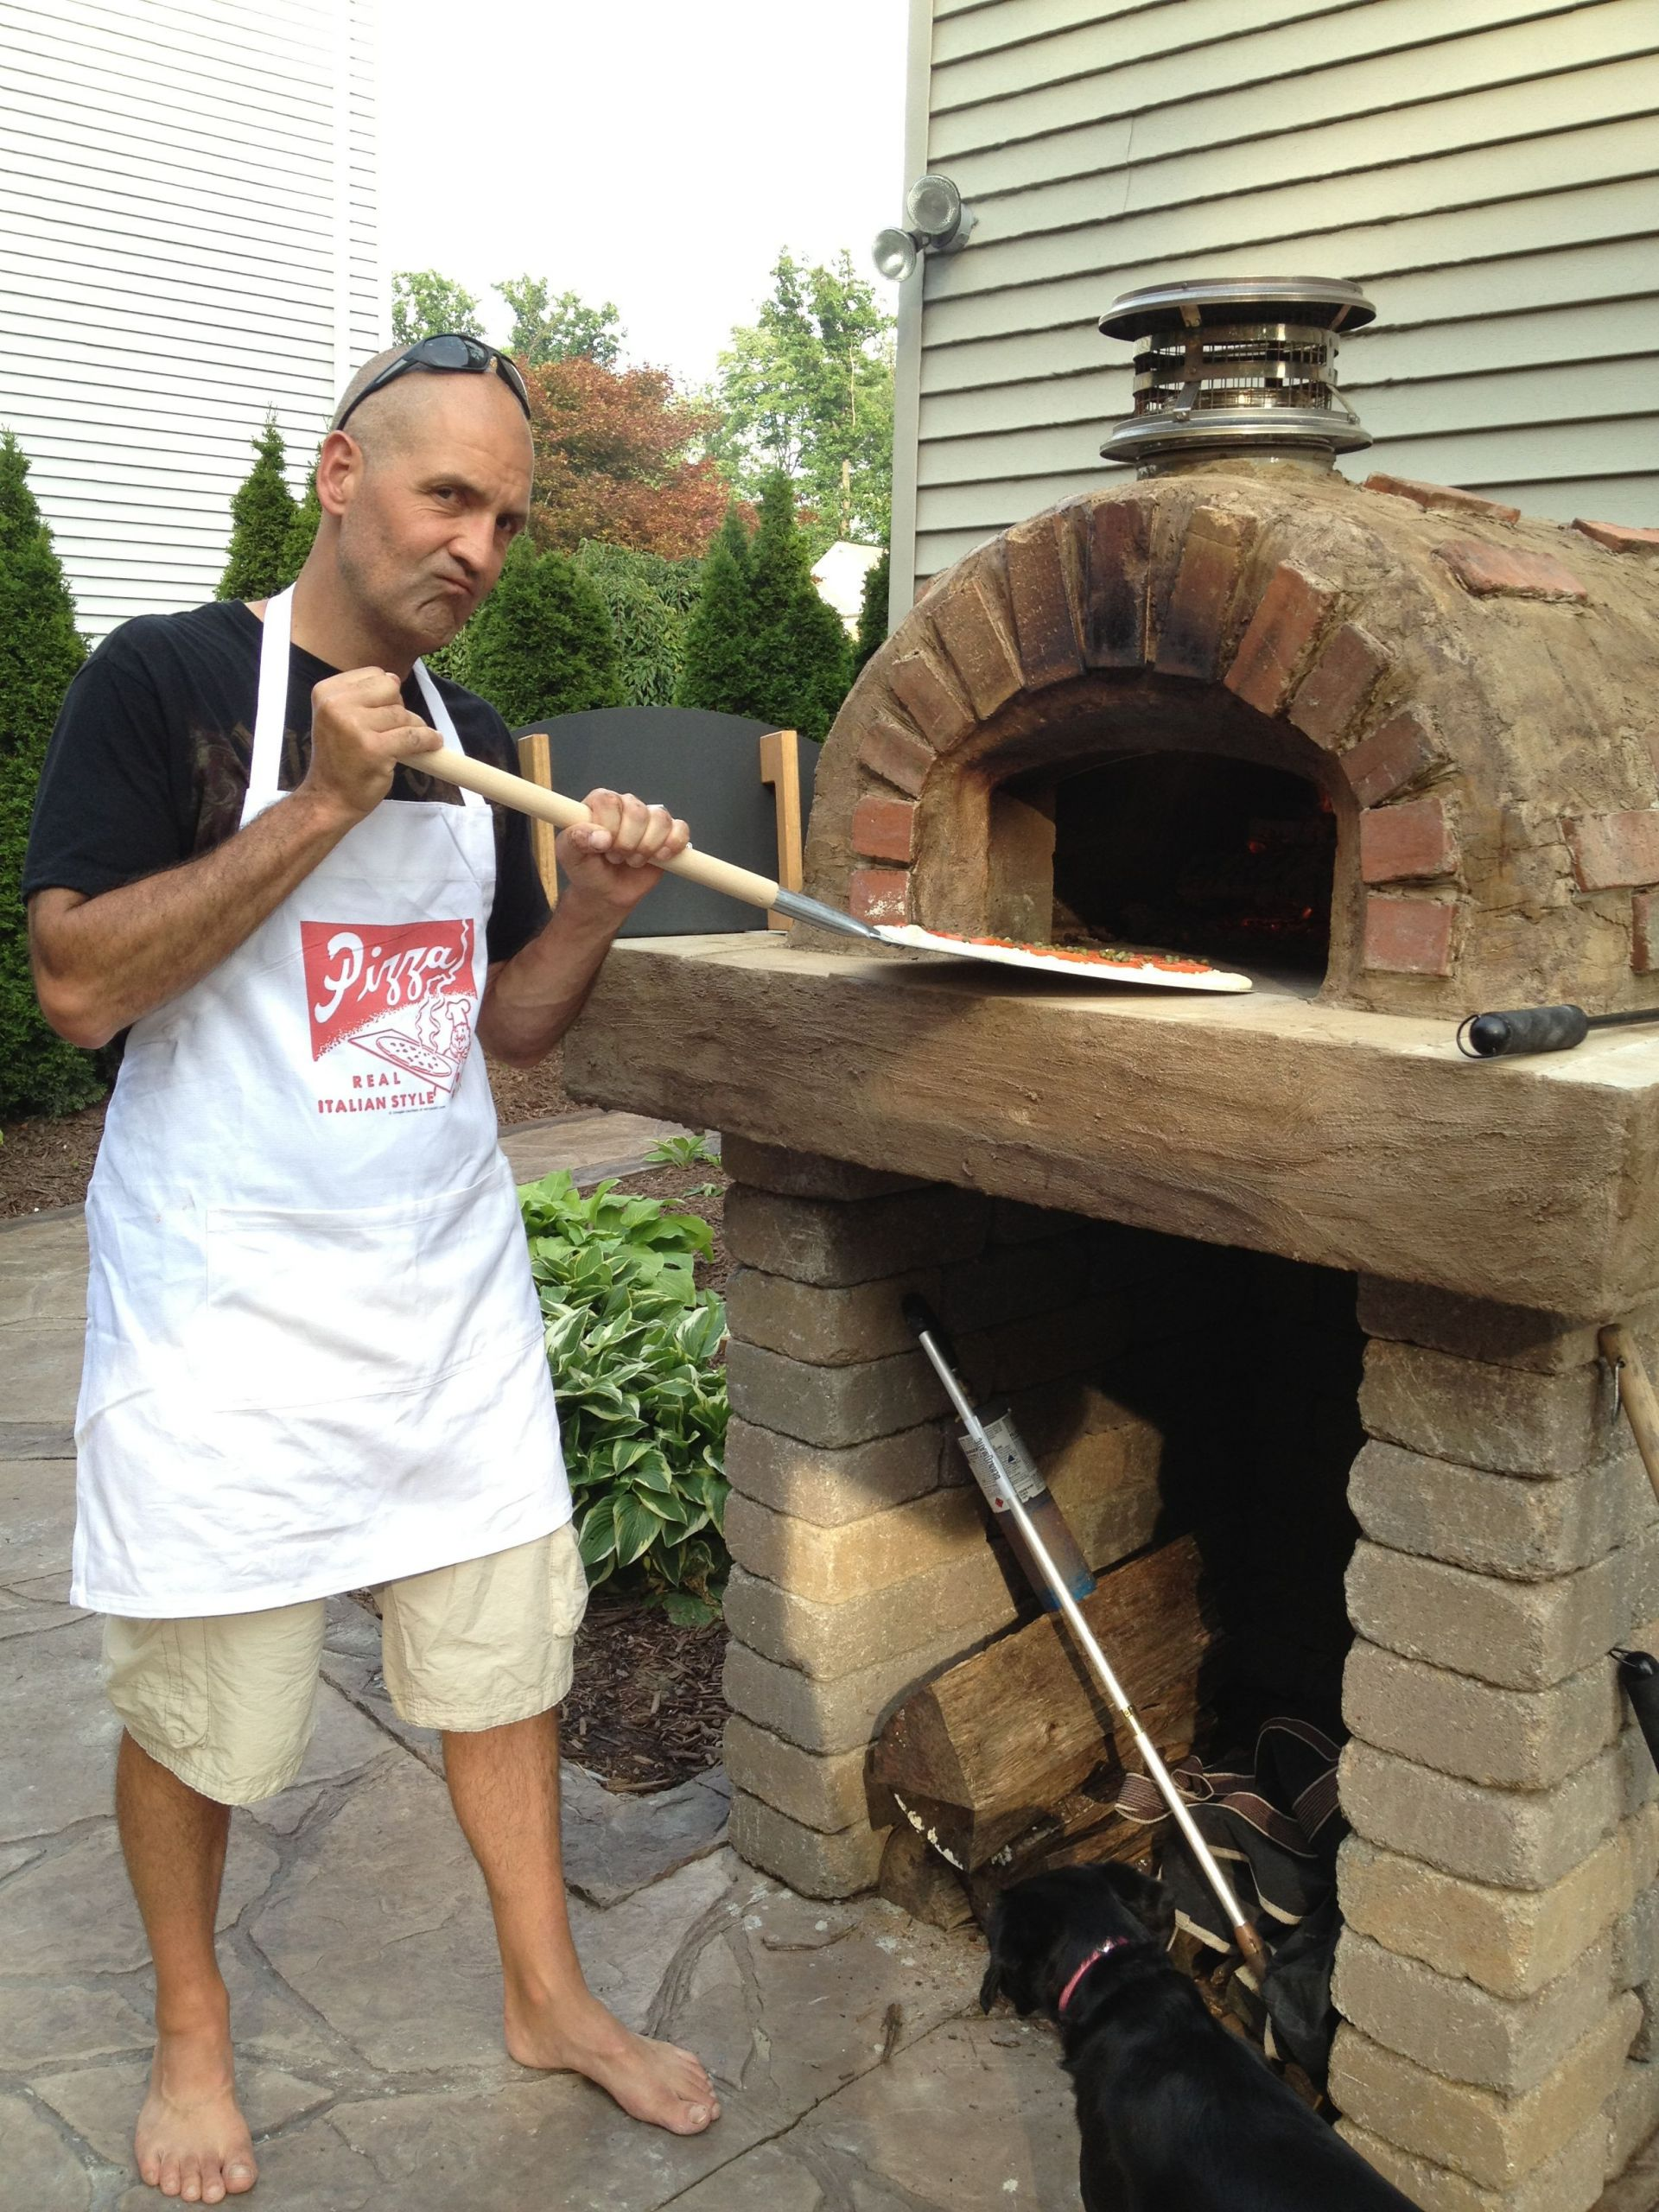 Outdoor Pizza Oven Plans DIY  Real Men Wear Aprons This DIY Wood Fired Outdoor Pizza